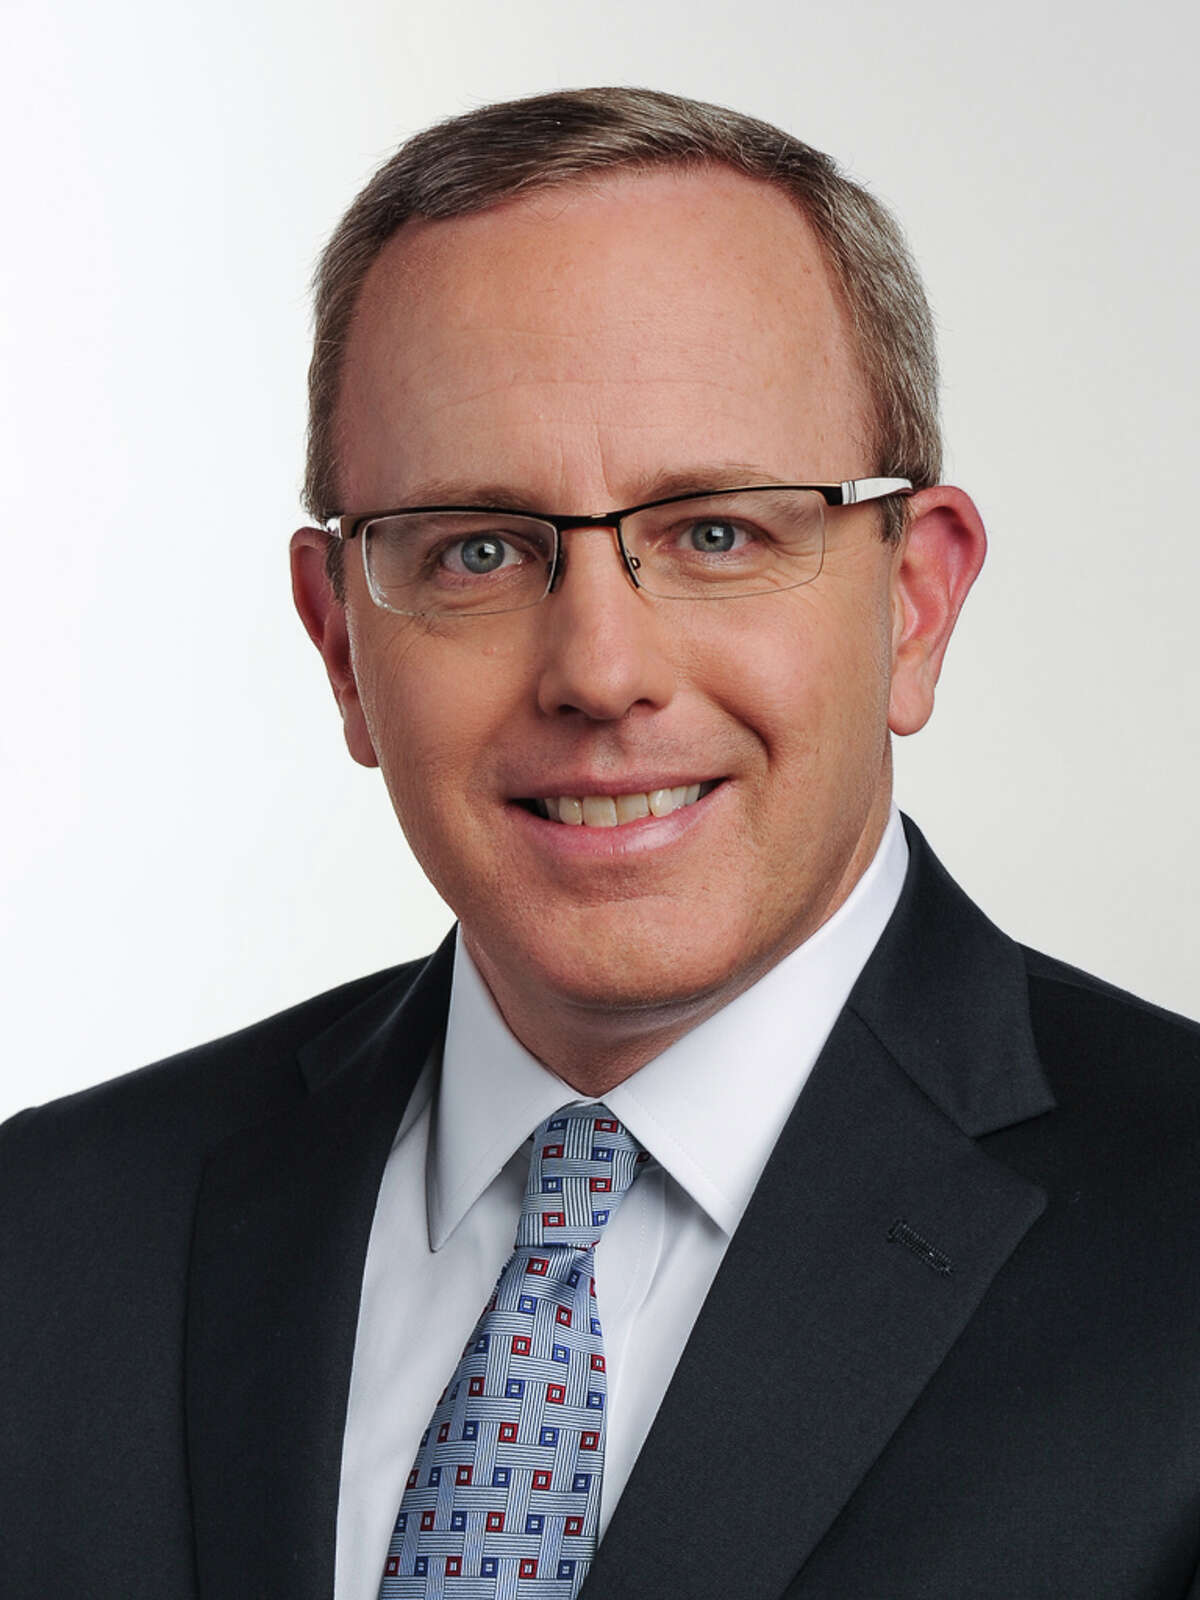 Scott Doyle has been named senior vice president natural gas distribution at CenterPoint Energy.